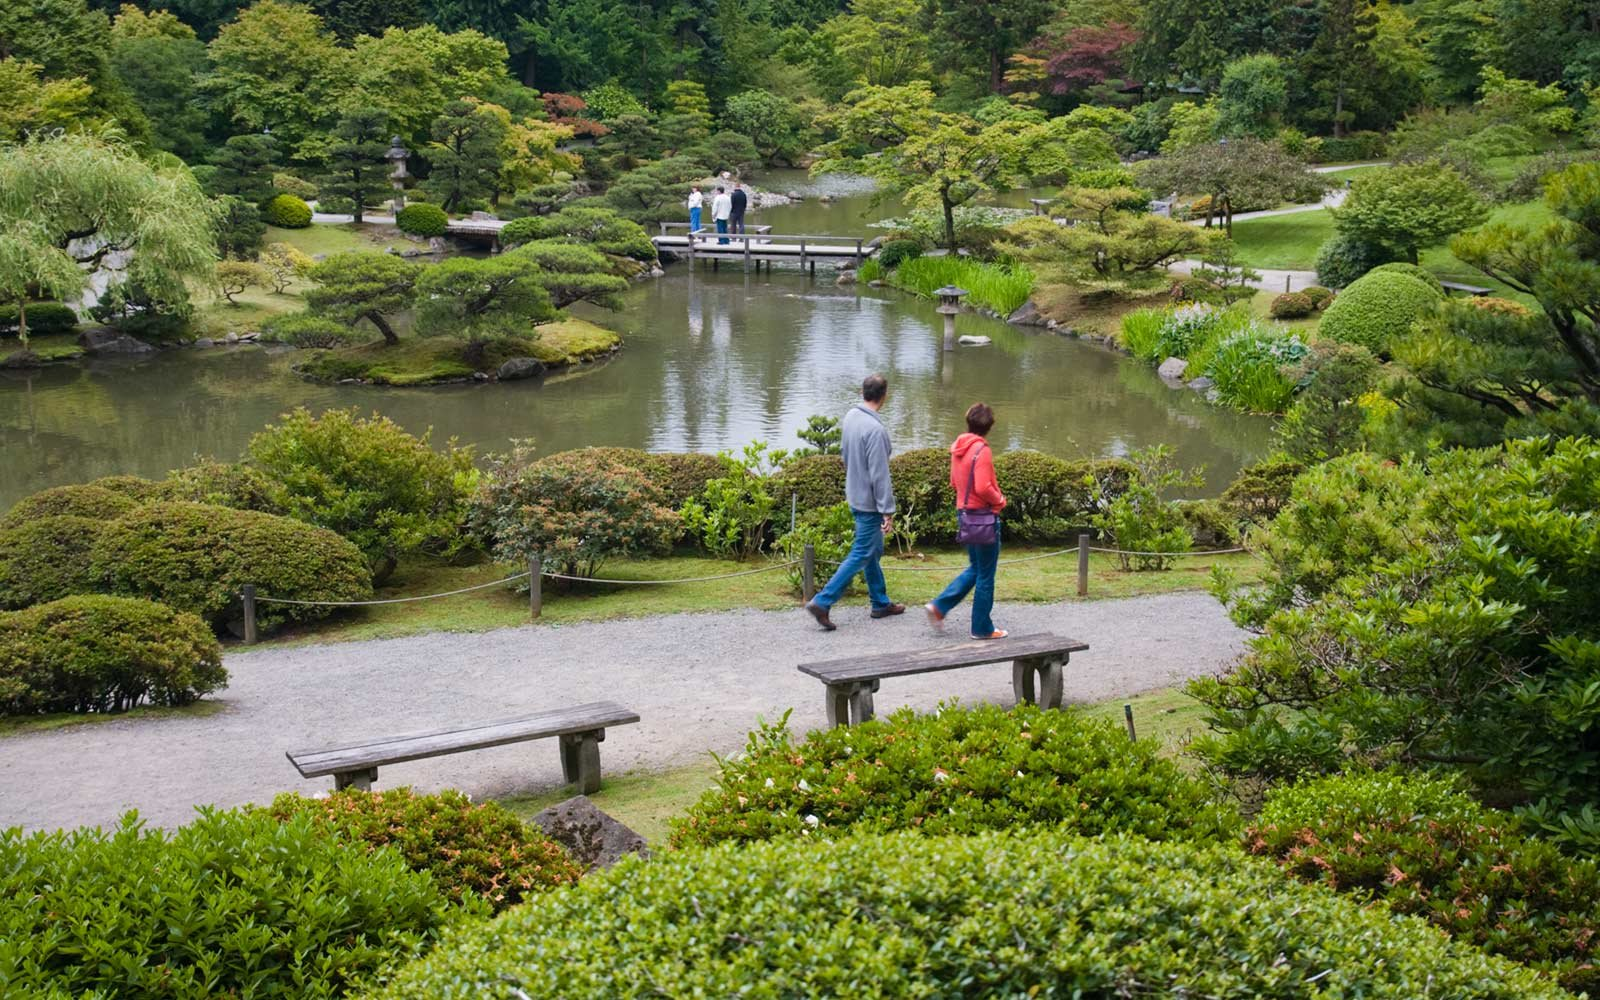 Japanese Garden, Washington Park Arboretum, Seattle, Washington